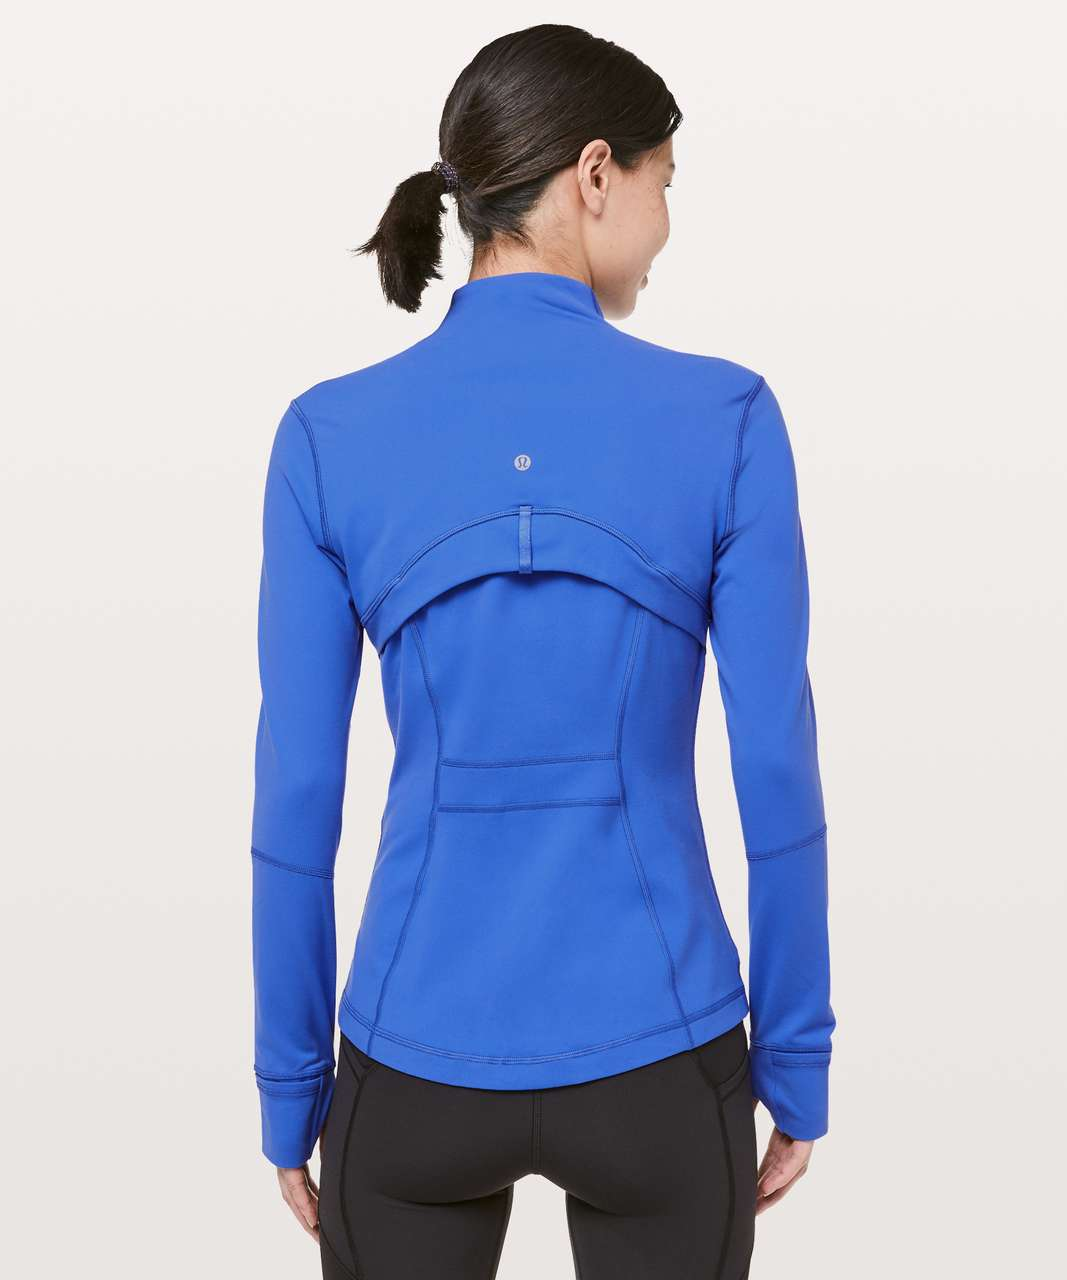 Lululemon Define Jacket - Blazer Blue